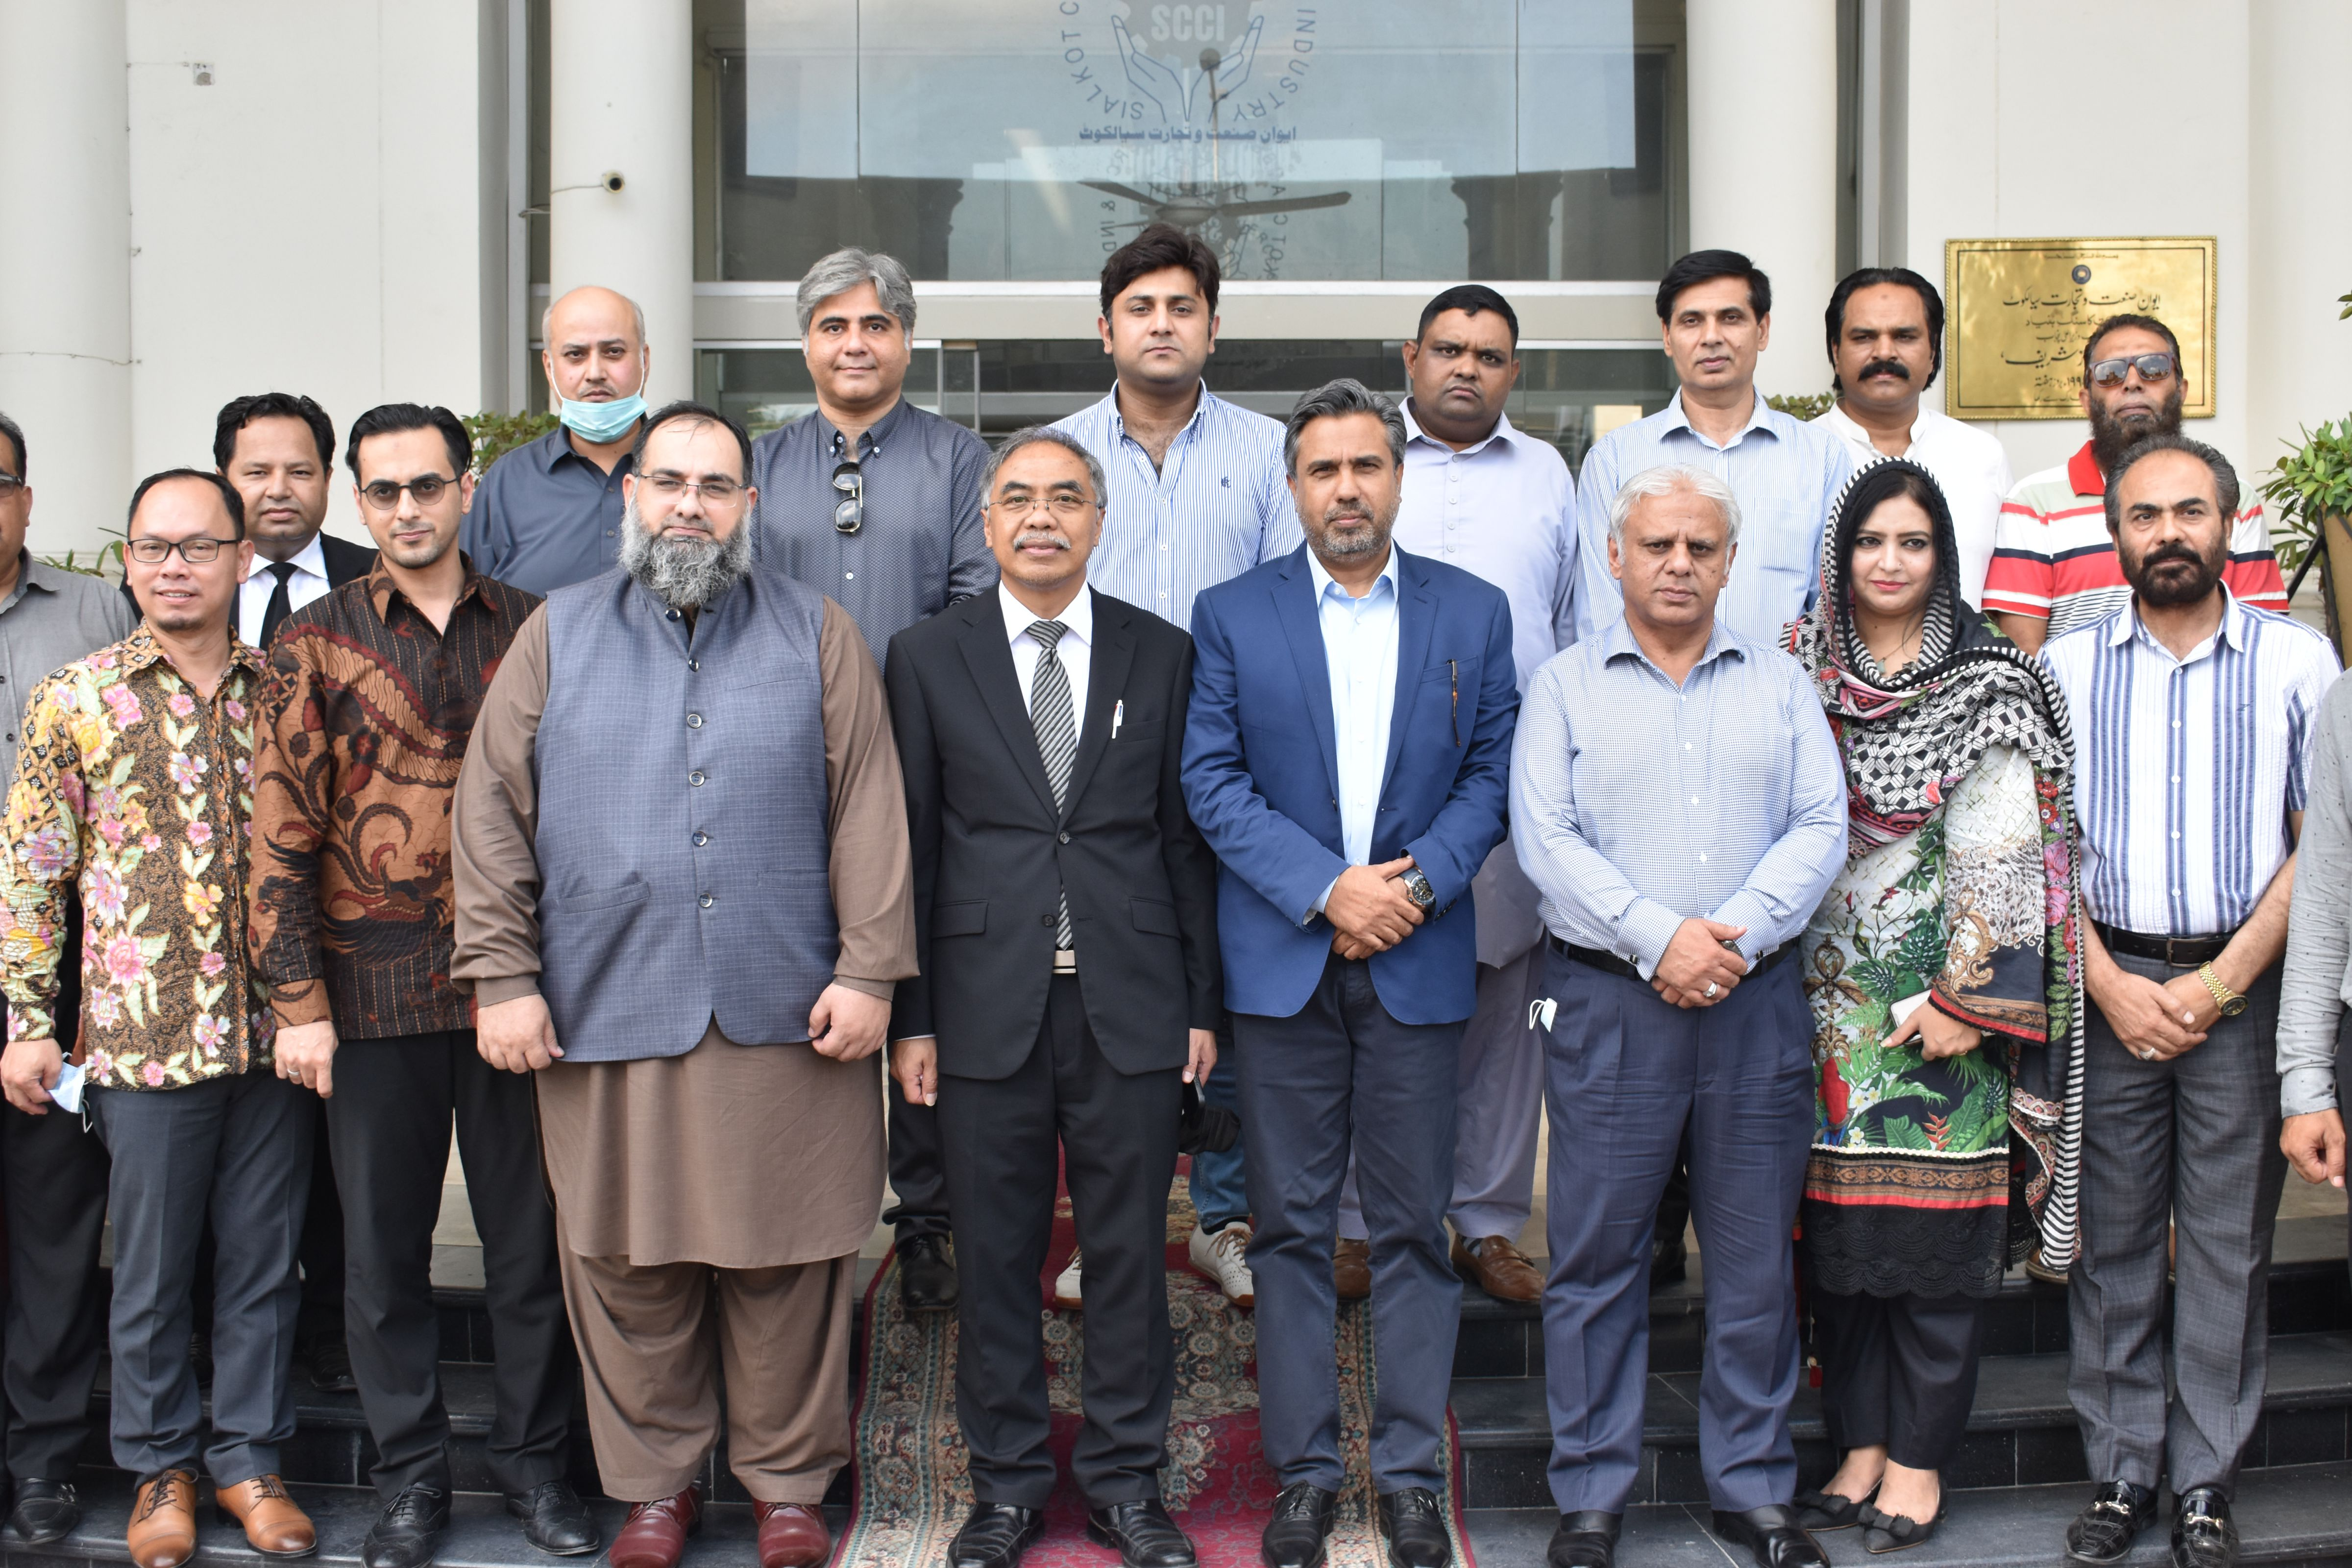 """On September 14, 2021, His Excellency Mr. Adam M. Tugio, Ambassador of Indonesia to Pakistan visited Sialkot Chamber of Commerce & Industry.   Mr. Qaisar Iqbal Baryar, President, Mr. Khuram Aslam, Senior Vice President, Mr. Ansar Aziz Puri, Vice President, Members of Executive Committee and prominent business community of Sialkot welcomed H.E. Mr. Adam. President Chamber mentioned the striving efforts from two Brotherly Islamic Countries Pakistan and Indonesia for promotion of bilateral trade relations. Mr. Qaisar Iqbal Baryar also recommended that both countries should cooperate and enter joint ventures for diversification of exports between two countries.   H.E. Mr. Adam expressed his gratitude for the esteemed welcome from business community of Sialkot and appreciated the potential of """"Made in Sialkot"""" products."""